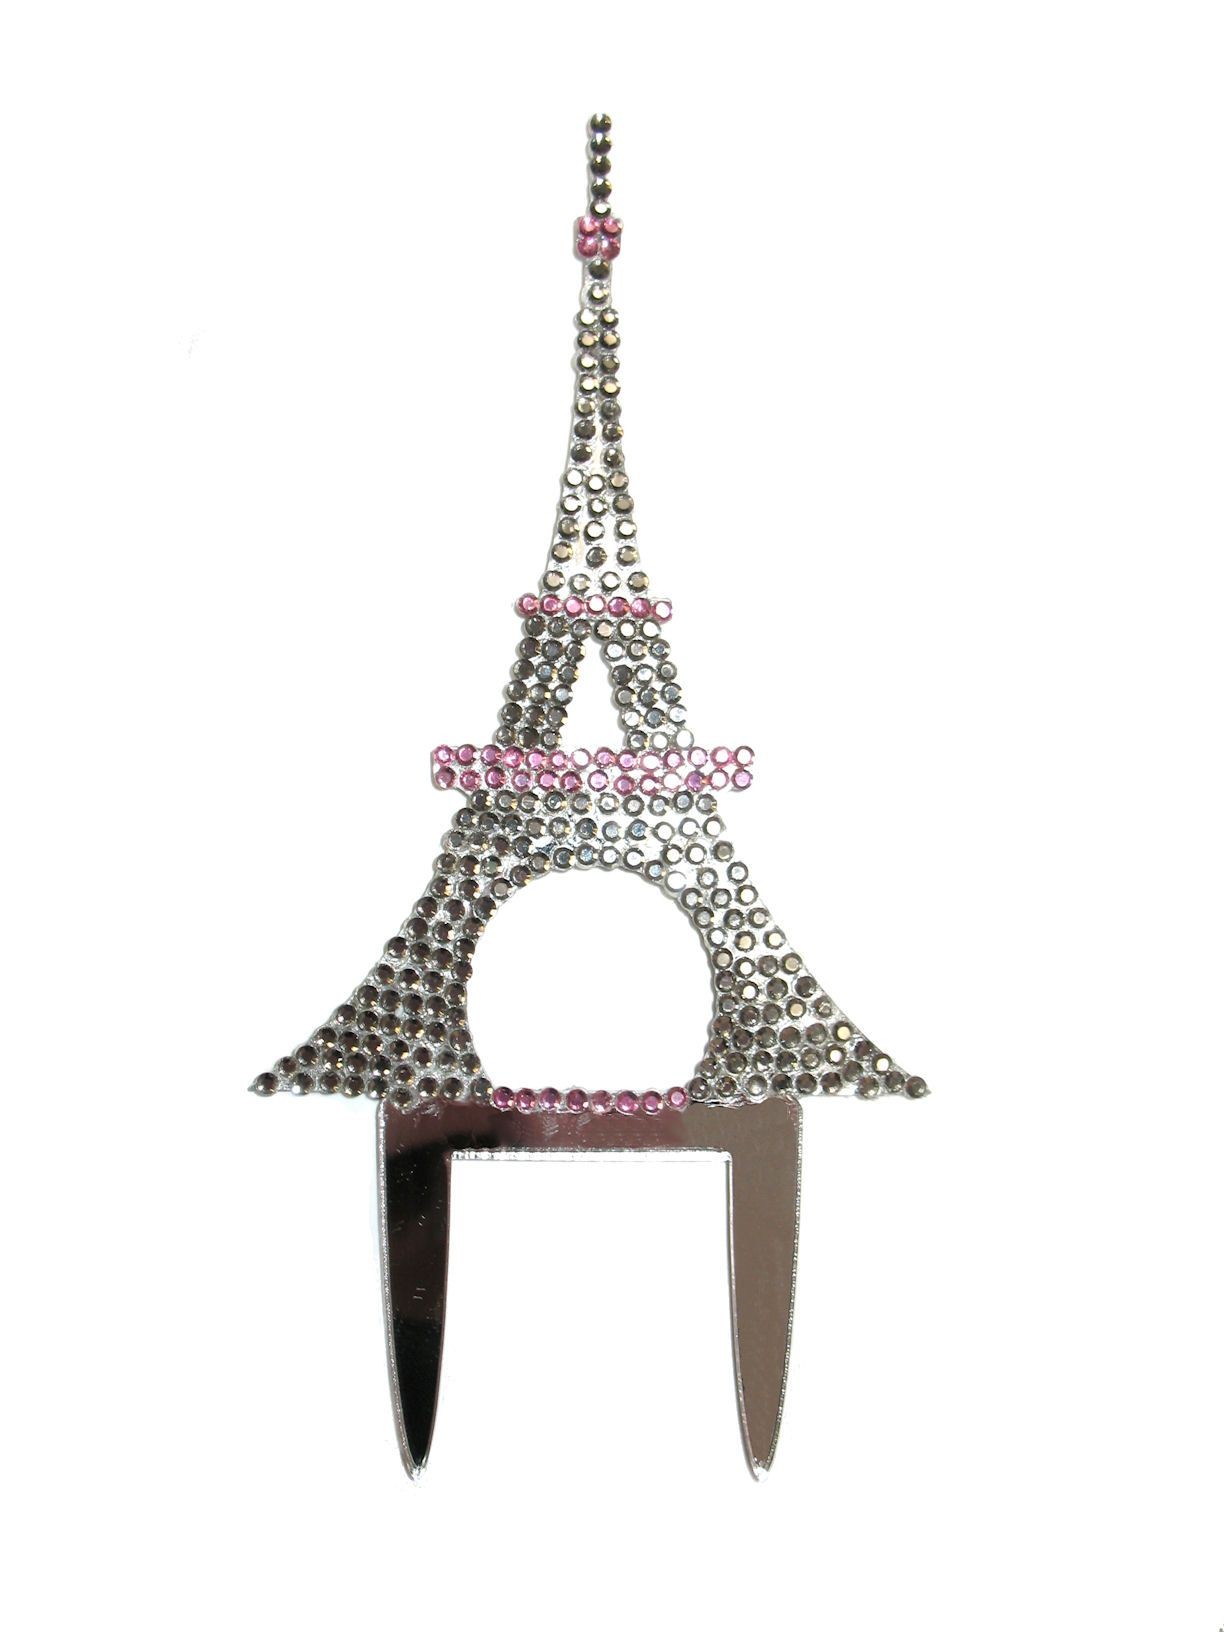 Crystal Covered Eiffel Tower Cake Topper 6995 Paris party ideas